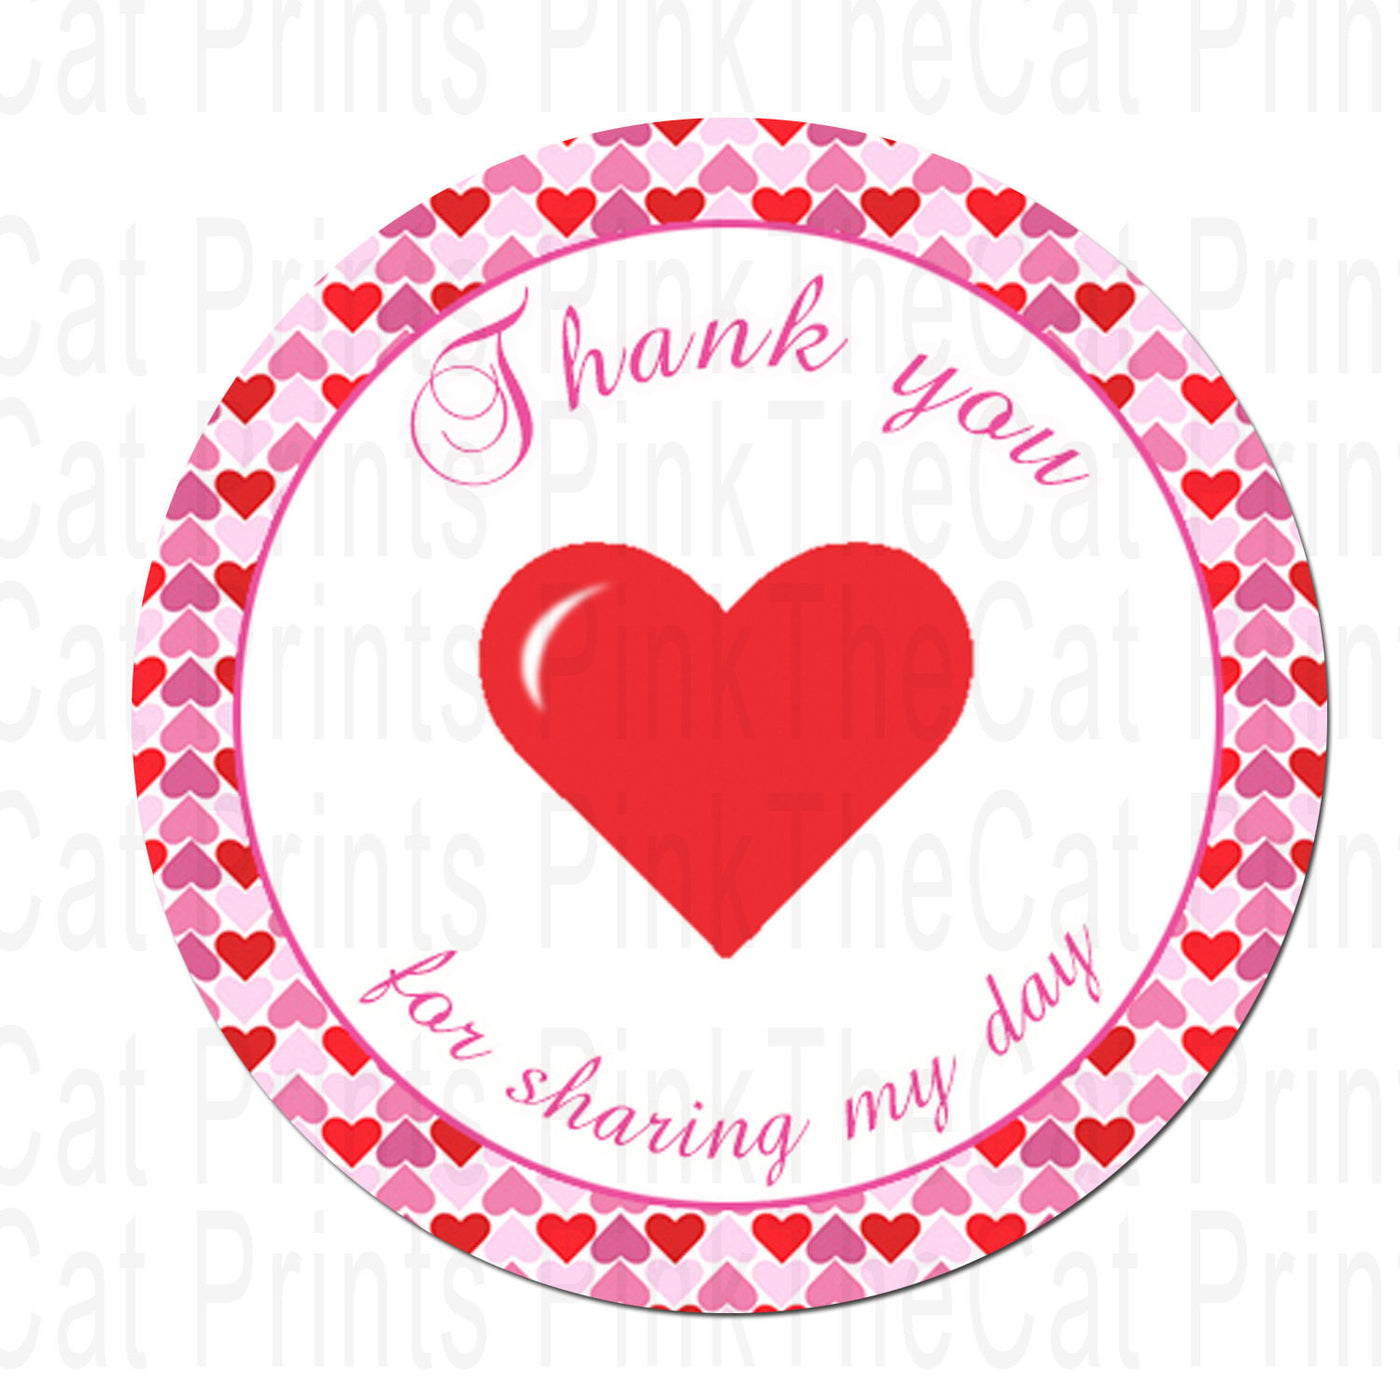 graphic about Printable Circle Stickers known as Immediate Obtain Printable Valentines Encouraged Bash Thank Your self Tag - Female Child Shower Favors Birthday Social gathering Favors Occasion Circle Stickers